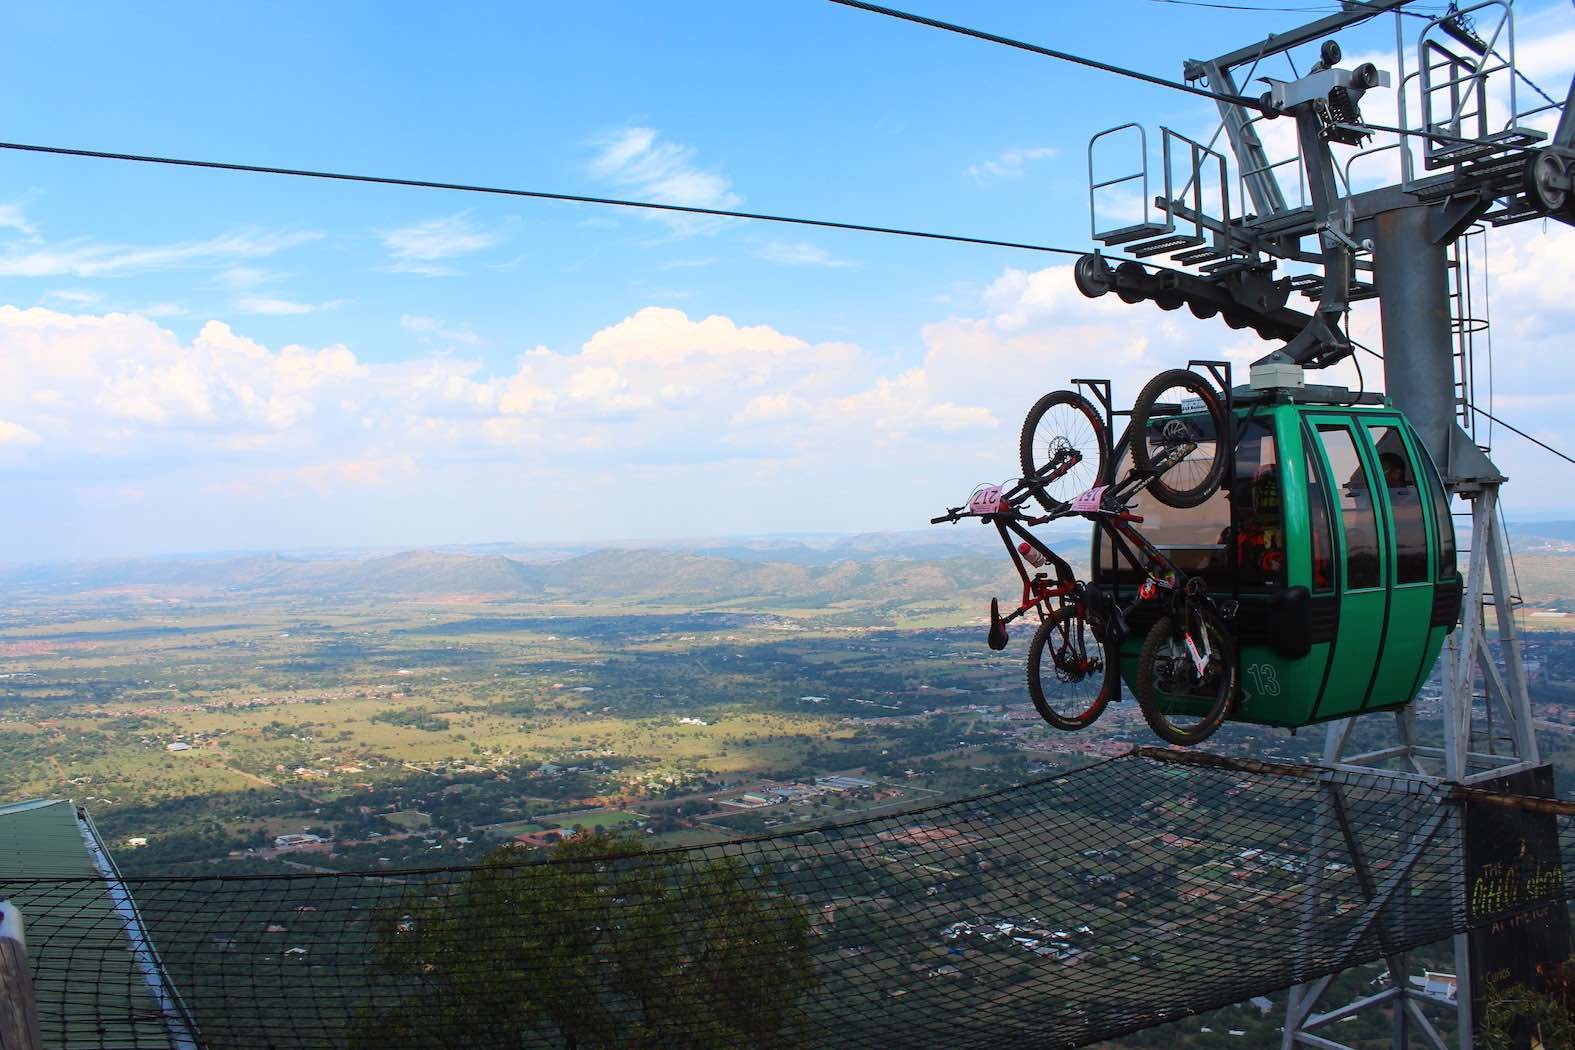 Hartbeespoort Adventure and Trail Park played host to the 2018 SA Downhill MTB Championships